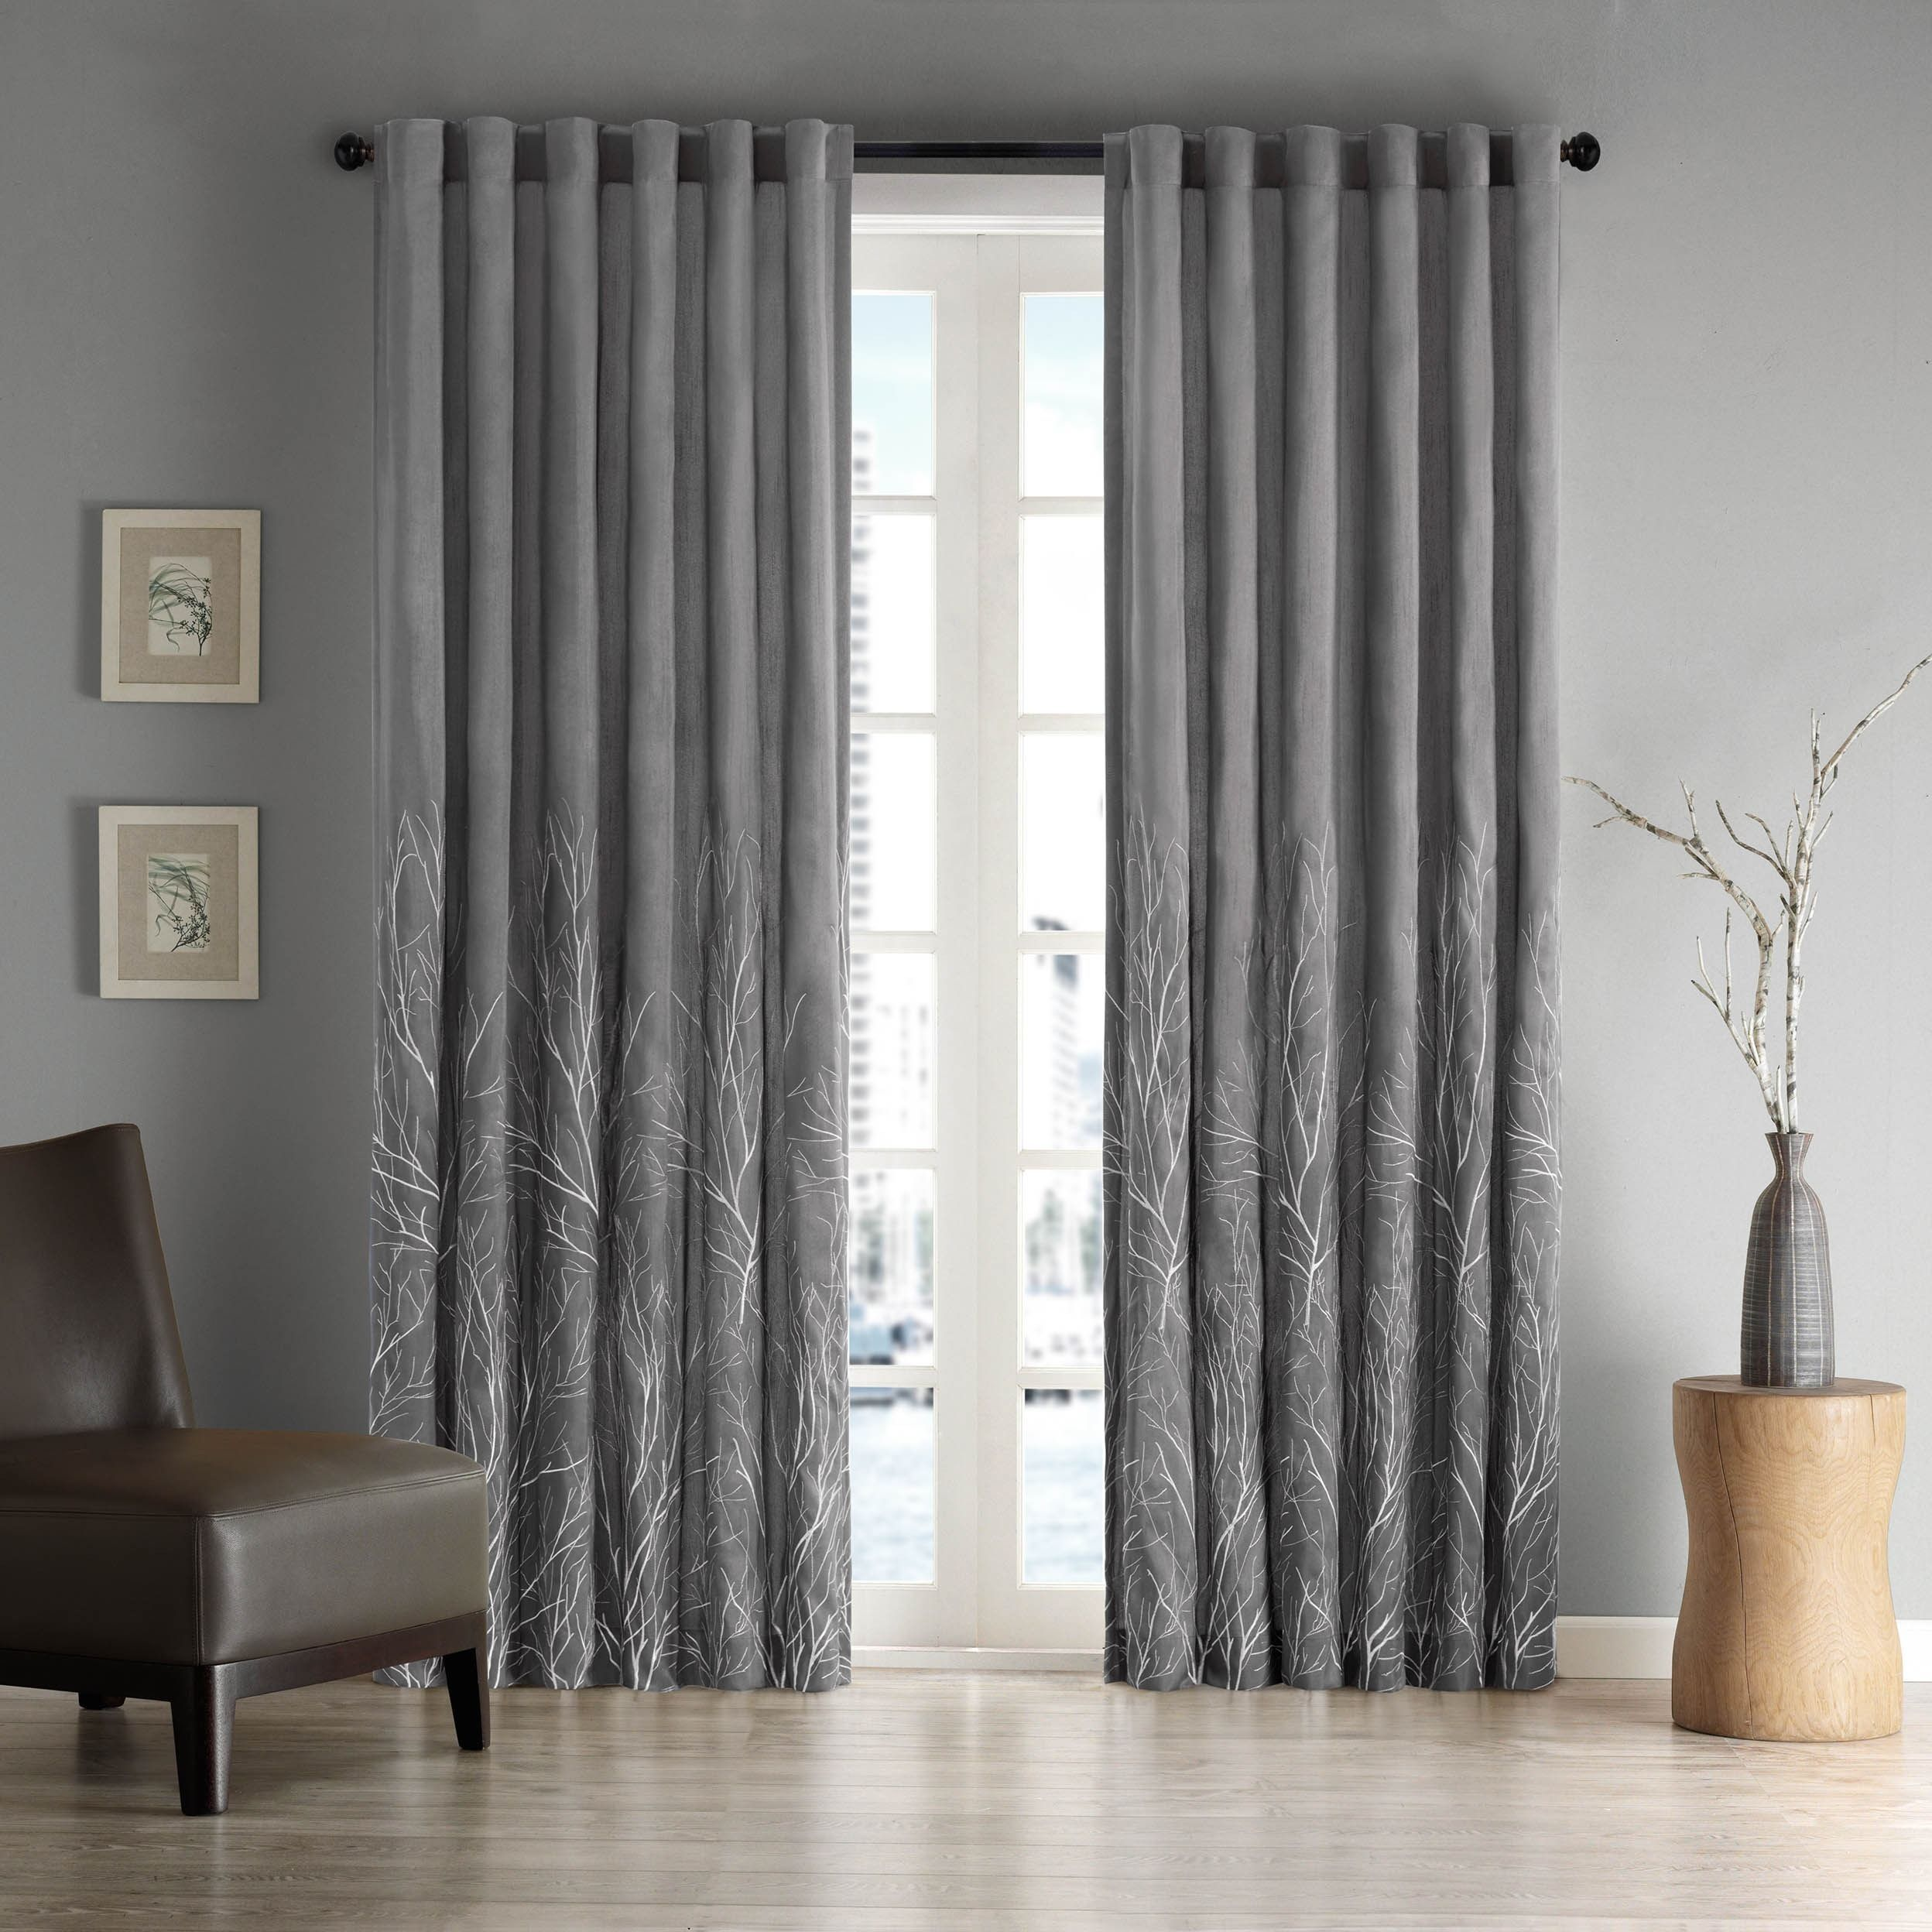 silk your applied with single curtains to residence free design solid panel enjoyable curtain tips taffeta faux blackout regard white drapes